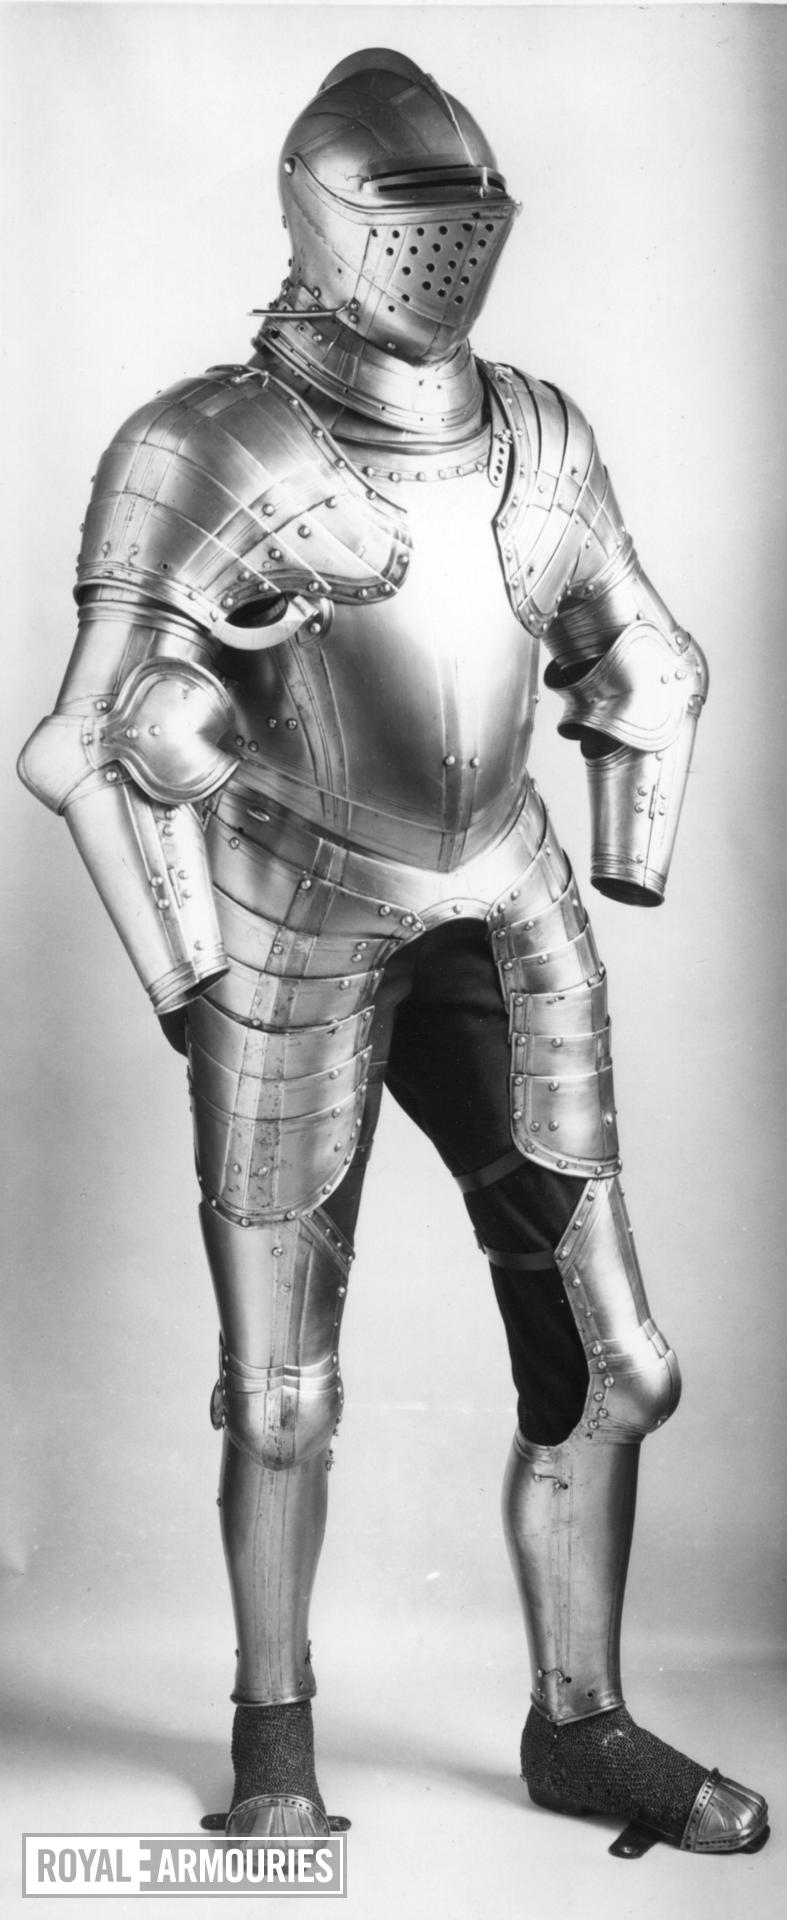 Field armour with decorated and gilt bands, possibly for Roger, 2nd Baron North